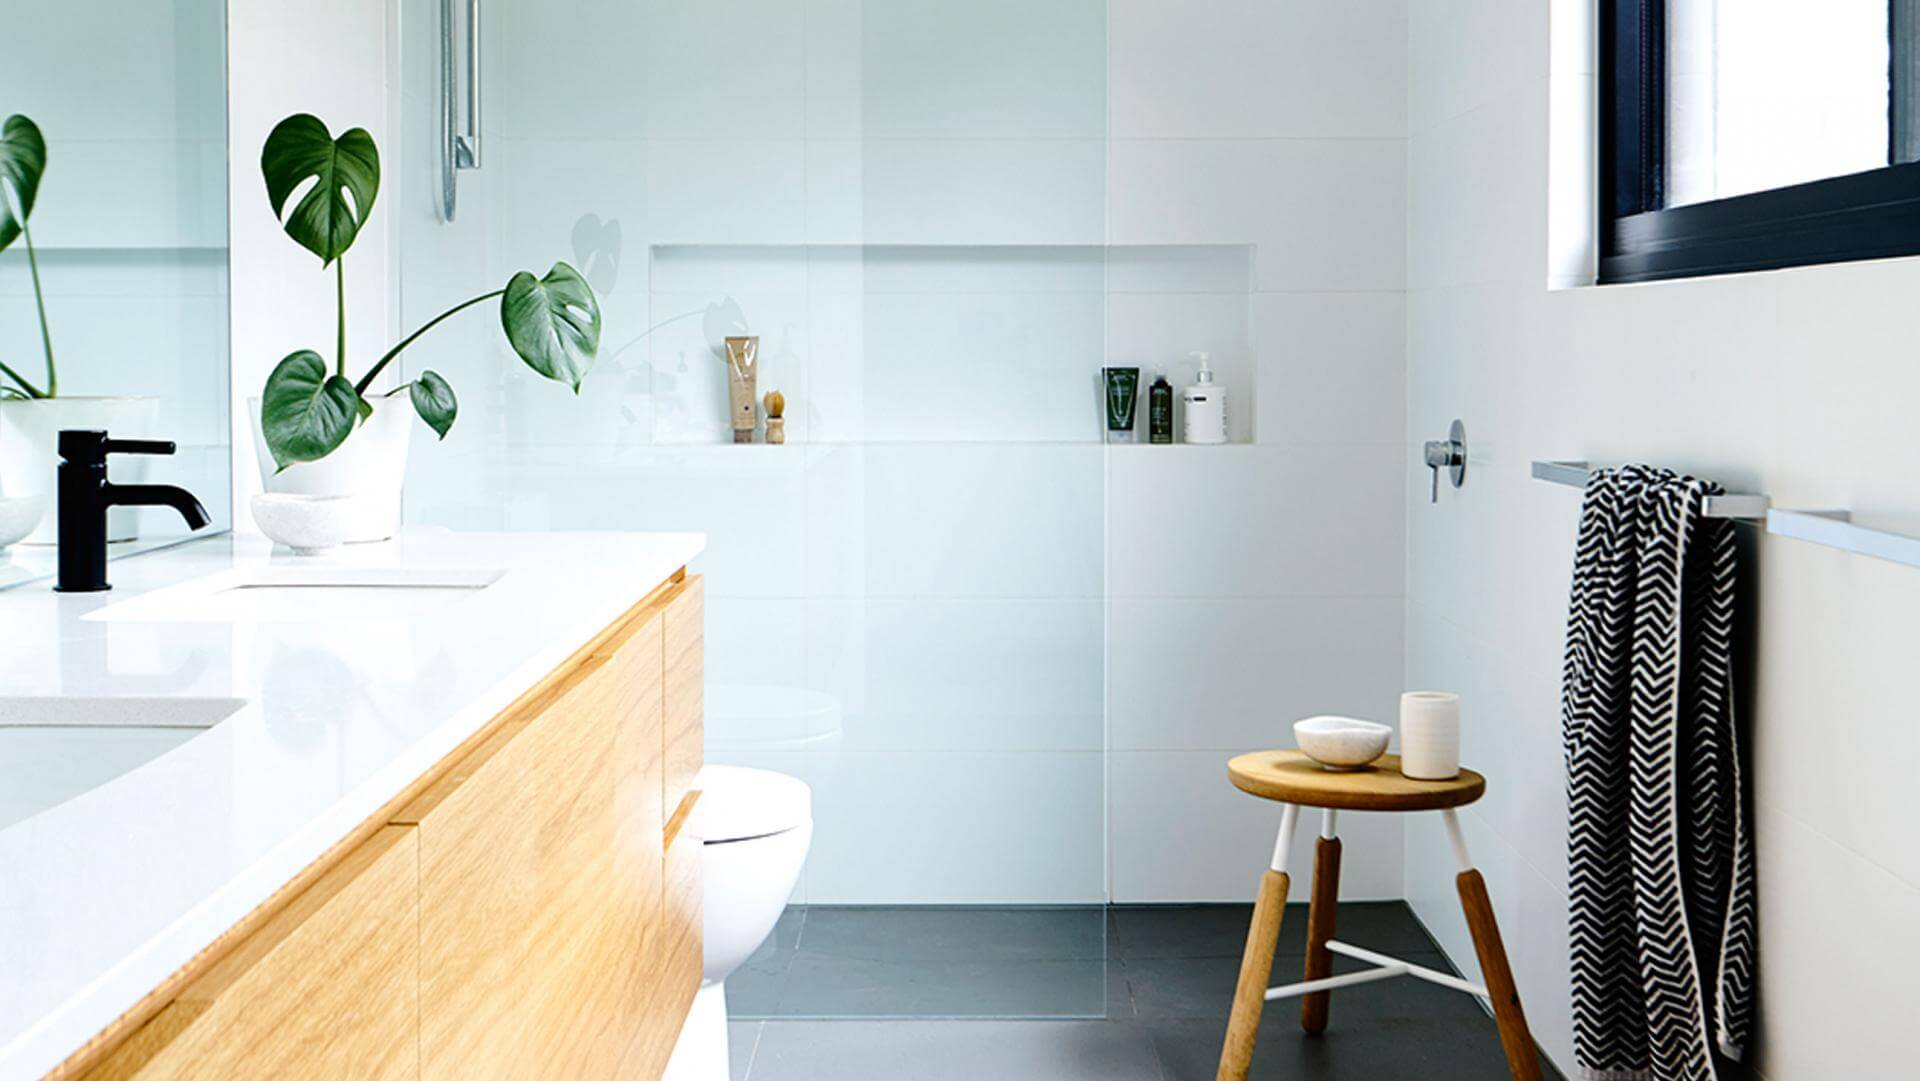 10 Simple Ways to Revitalize Your Old Bathroom